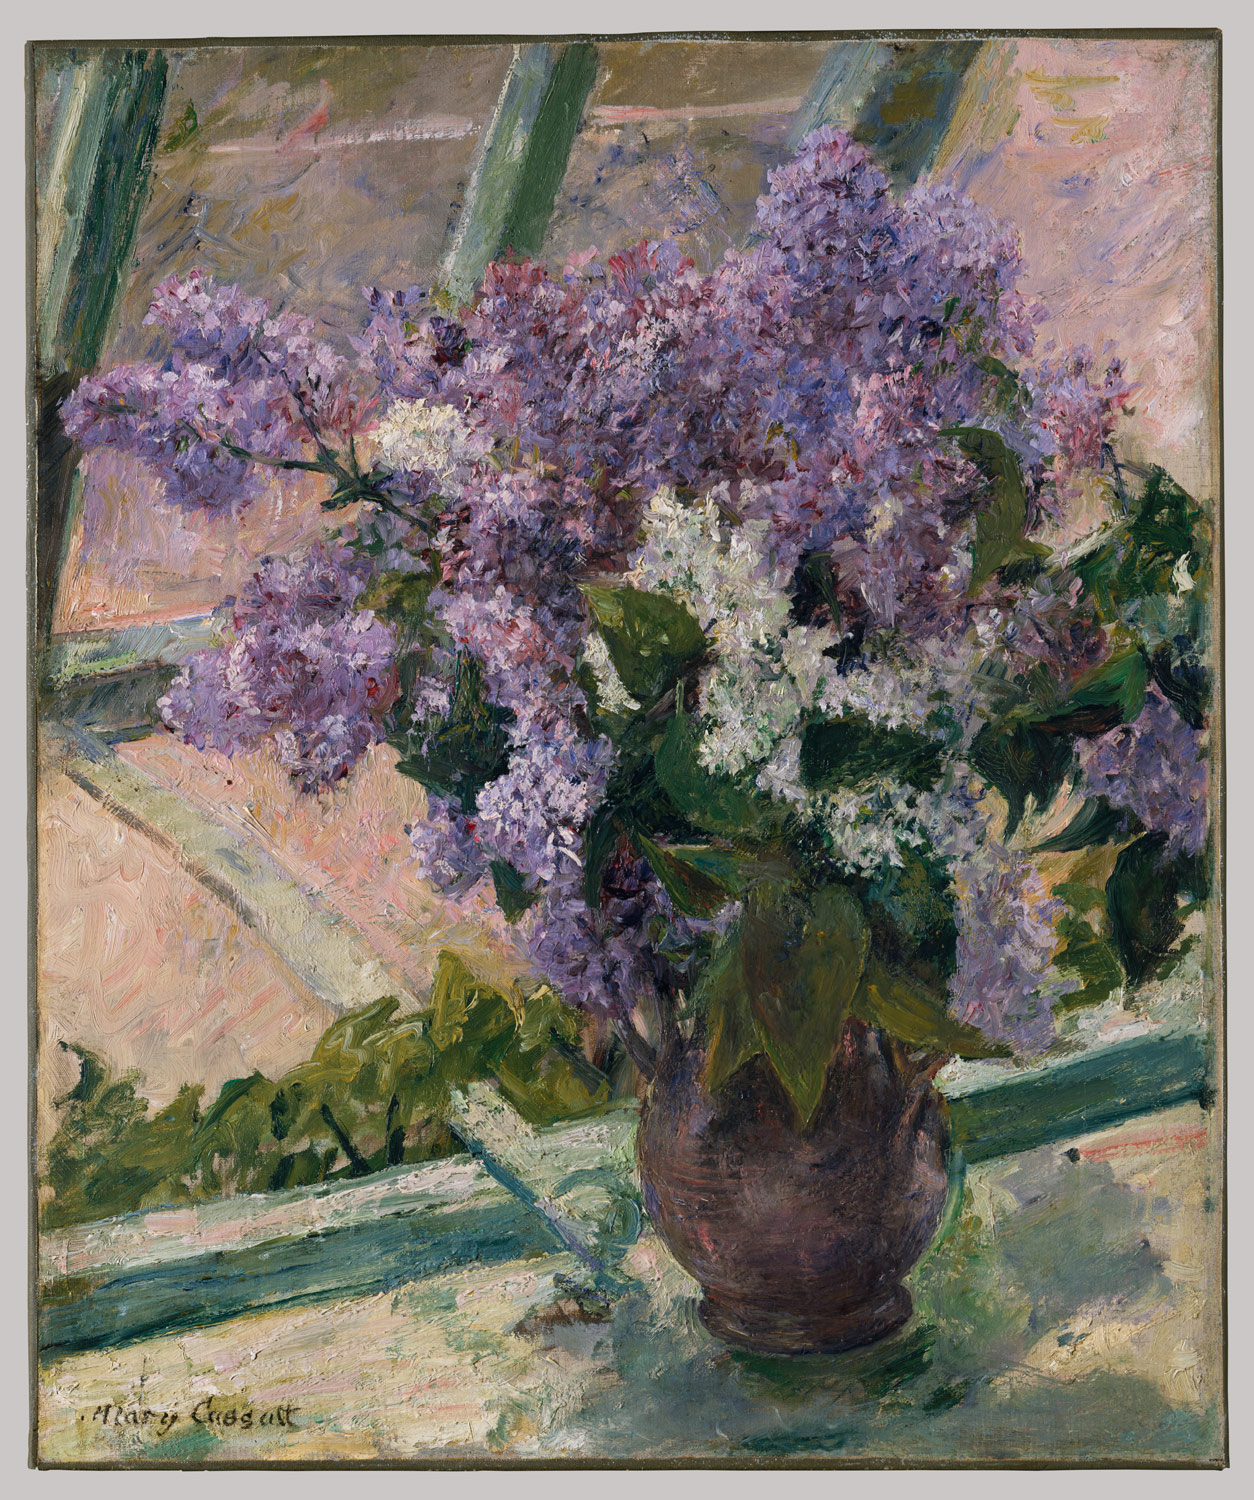 Lilacs in a Window (Vase de Lilas a la Fenetre)